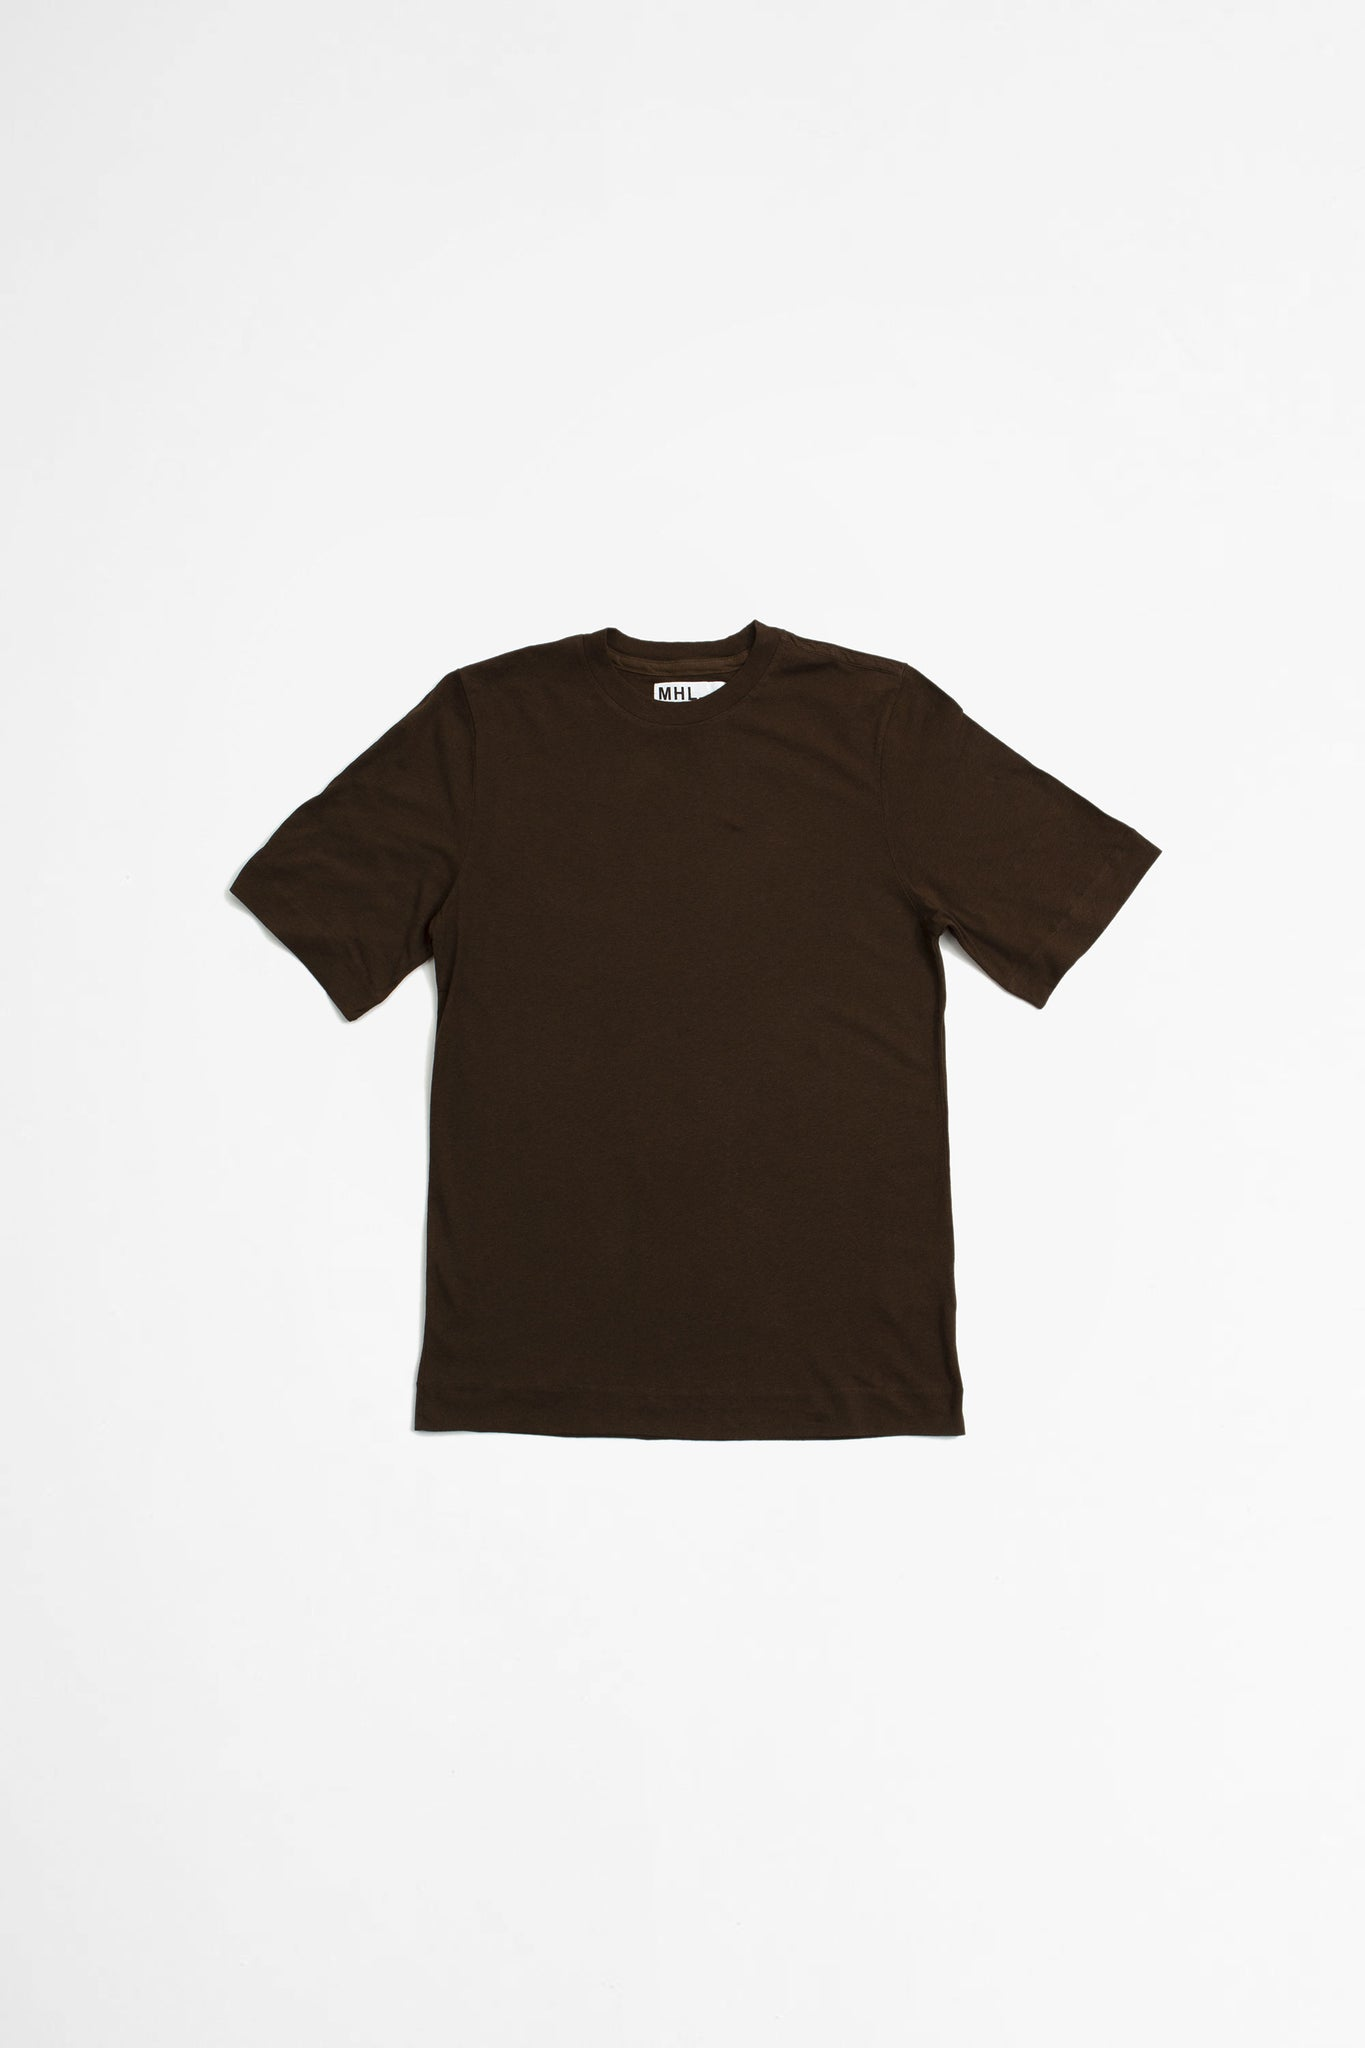 Basic t-shirt cotton linen jersey chestnut